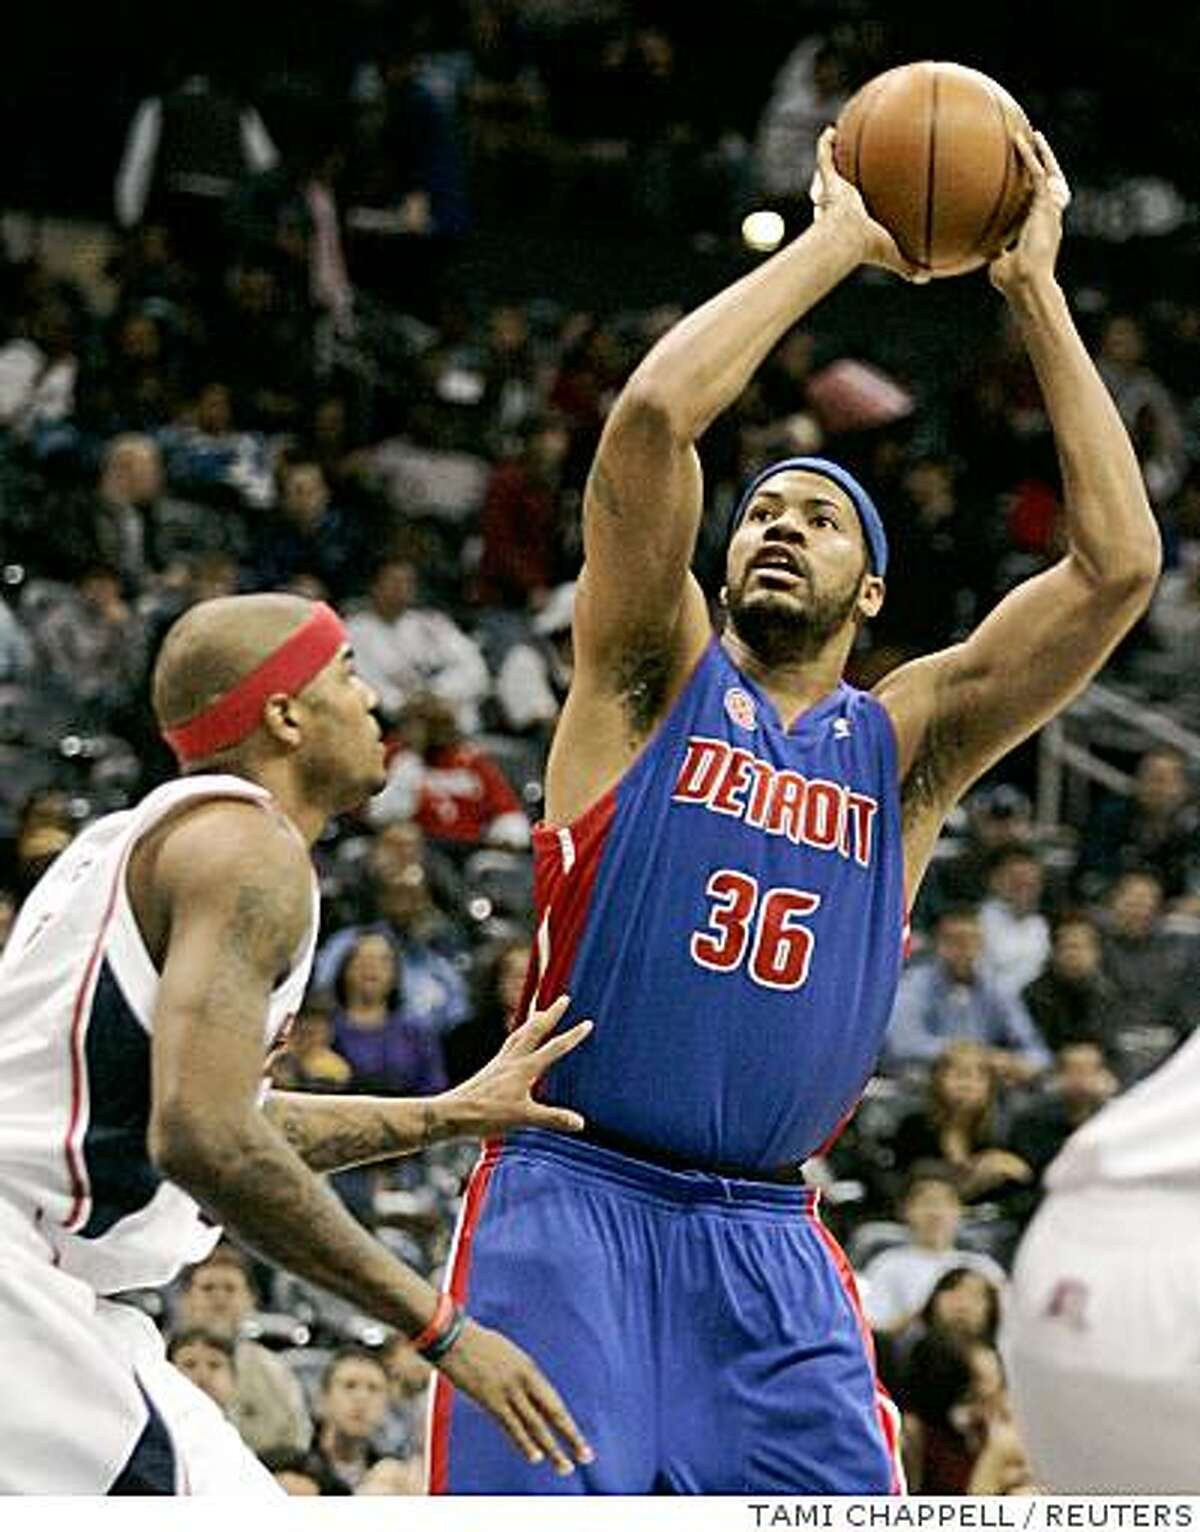 Detroit Pistons center Rasheed Wallace (R) prepares to take a three point shot over Atlanta Hawks forward Josh Smith in the first half at their NBA basketball game in Atlanta, Georgia on February 12, 2008. REUTERS/Tami Chappell (UNITED STATES)